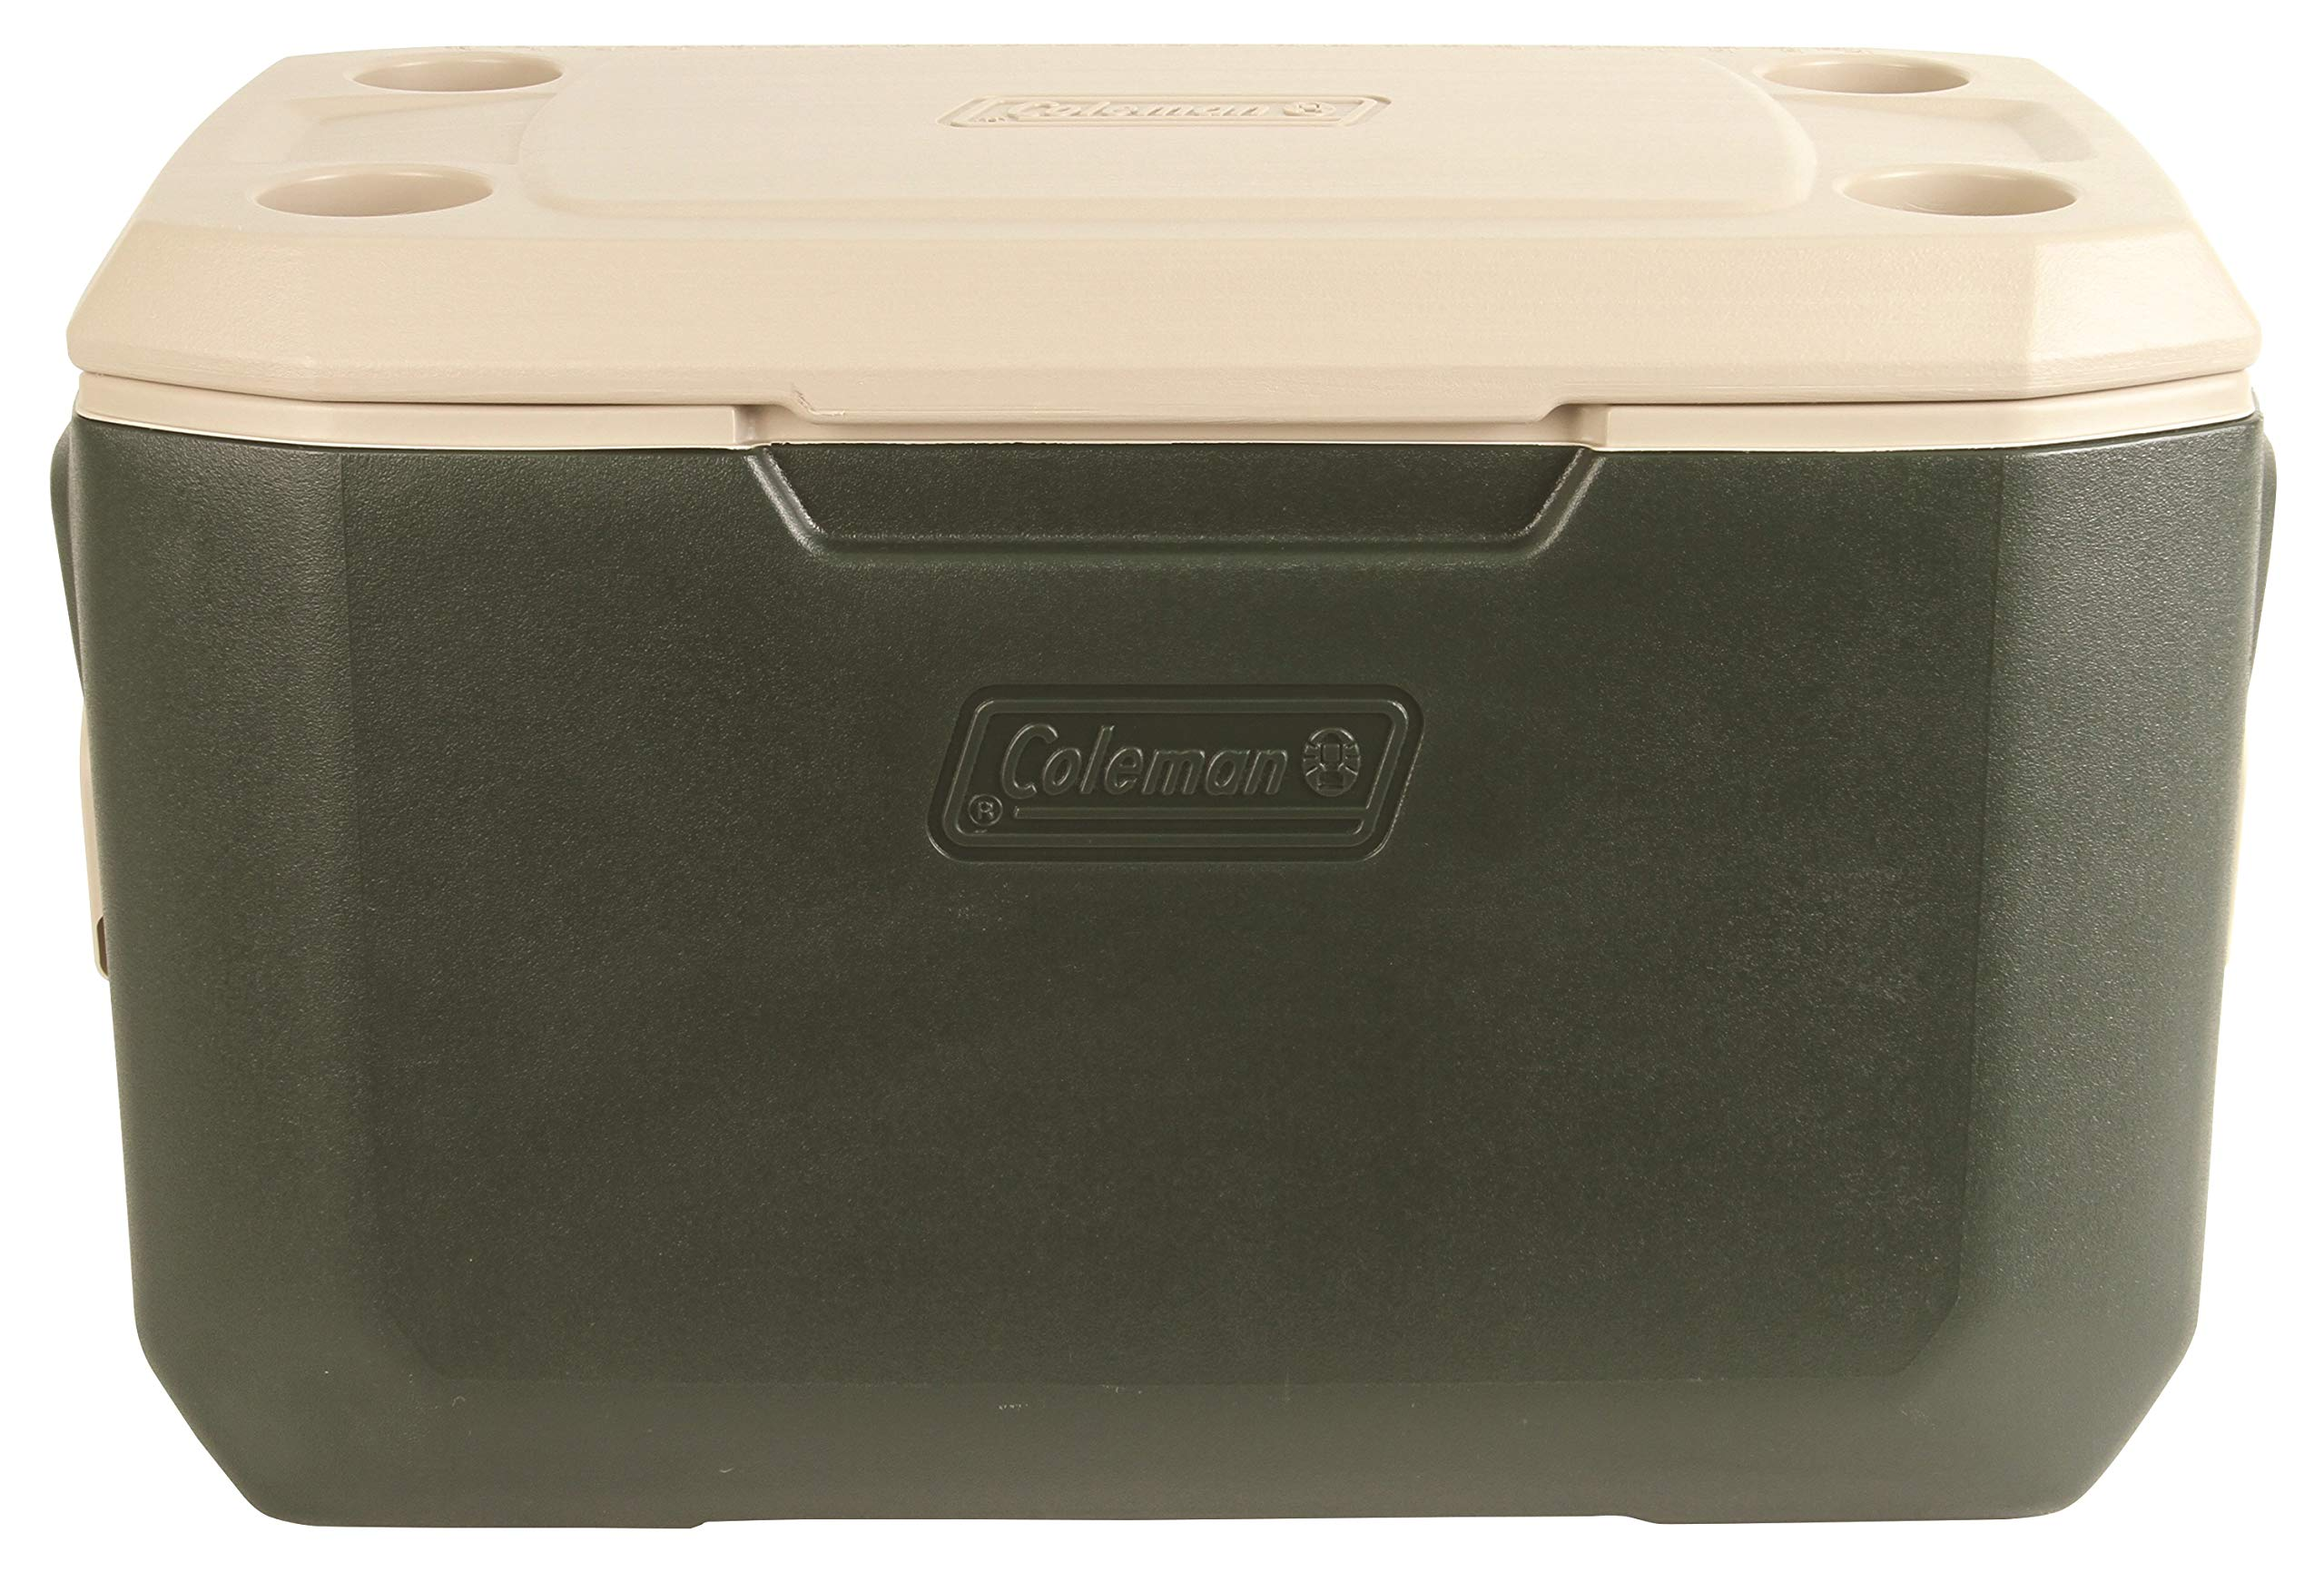 Coleman Wheeled Cooler | Xtreme Cooler Keeps Ice Up to 5 Days | Heavy-Duty 70-Quart Cooler with Wheels for Camping, BBQs, Tailgating & Outdoor Activities (Green, 70-Quart)